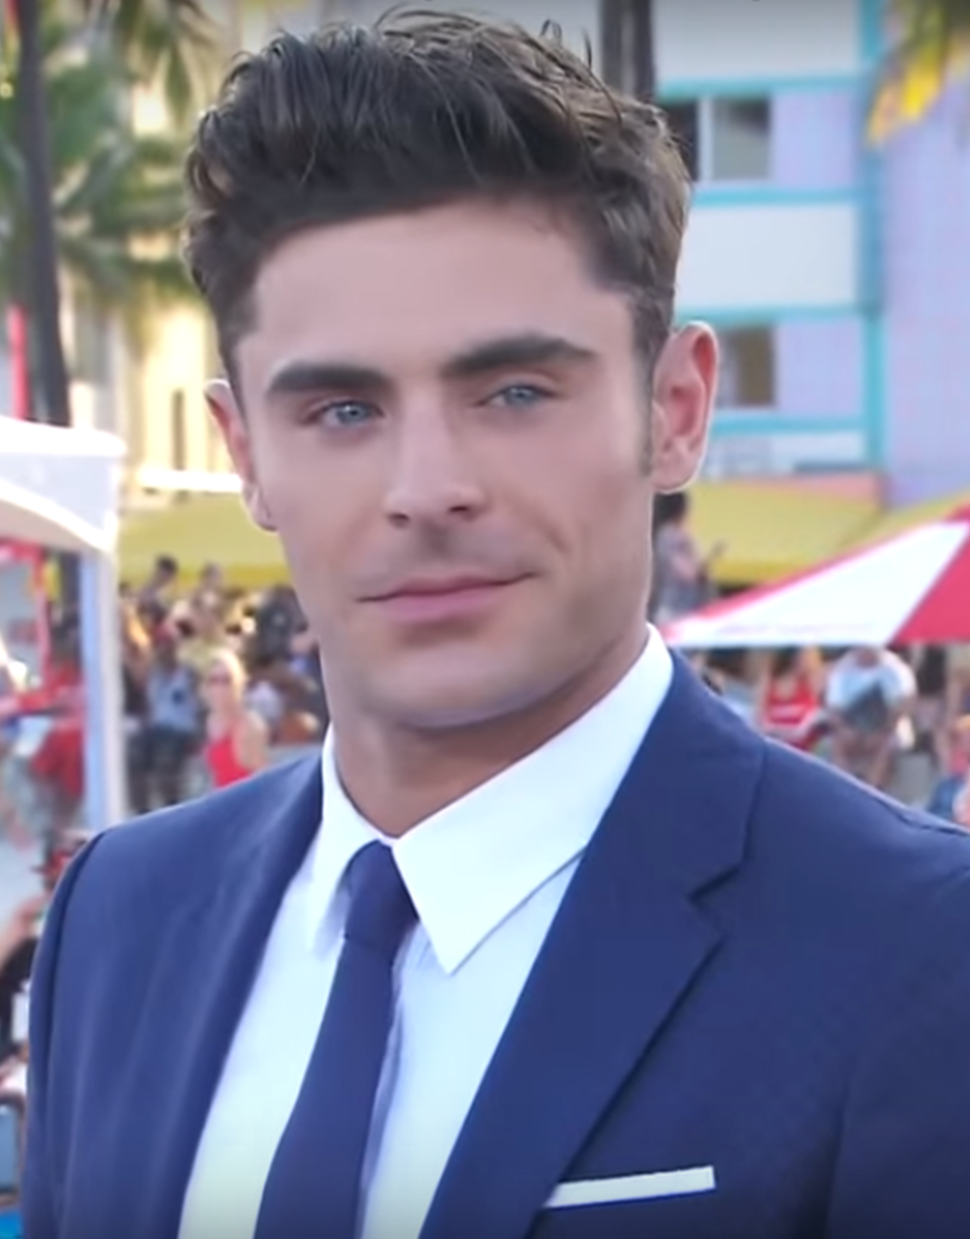 Zac Efron on the red carpet of the Baywatch in Miami 02